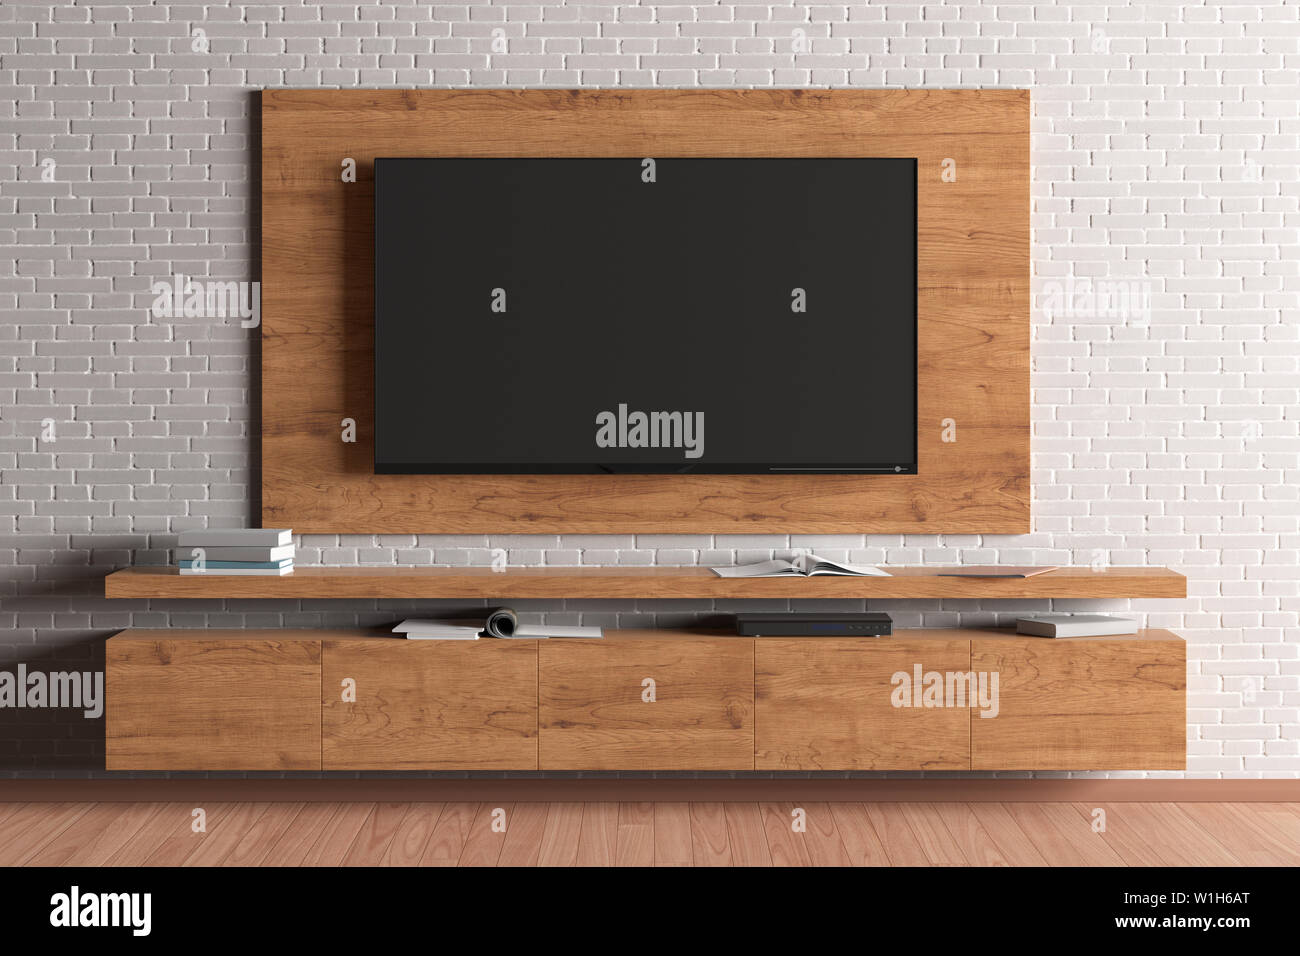 Tv Mock Up On The Wooden Plate And Cabinet On The White Brick Wall In The Modern Living Room 3d Illustration Stock Photo Alamy